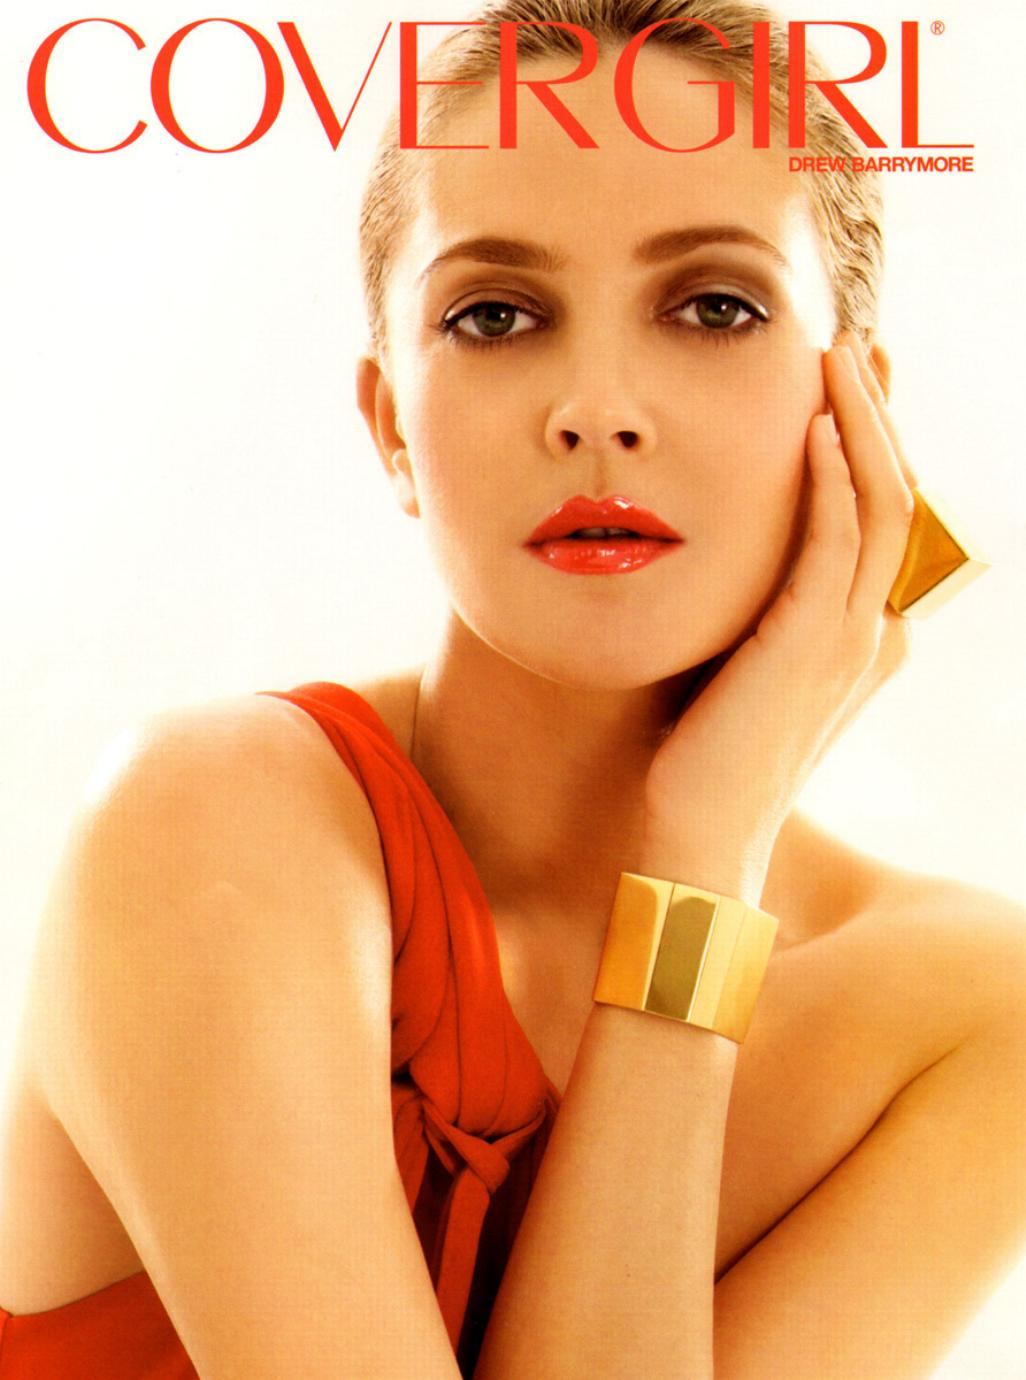 Drew barrymore covergirl summer/spring 2010 ad campaign.